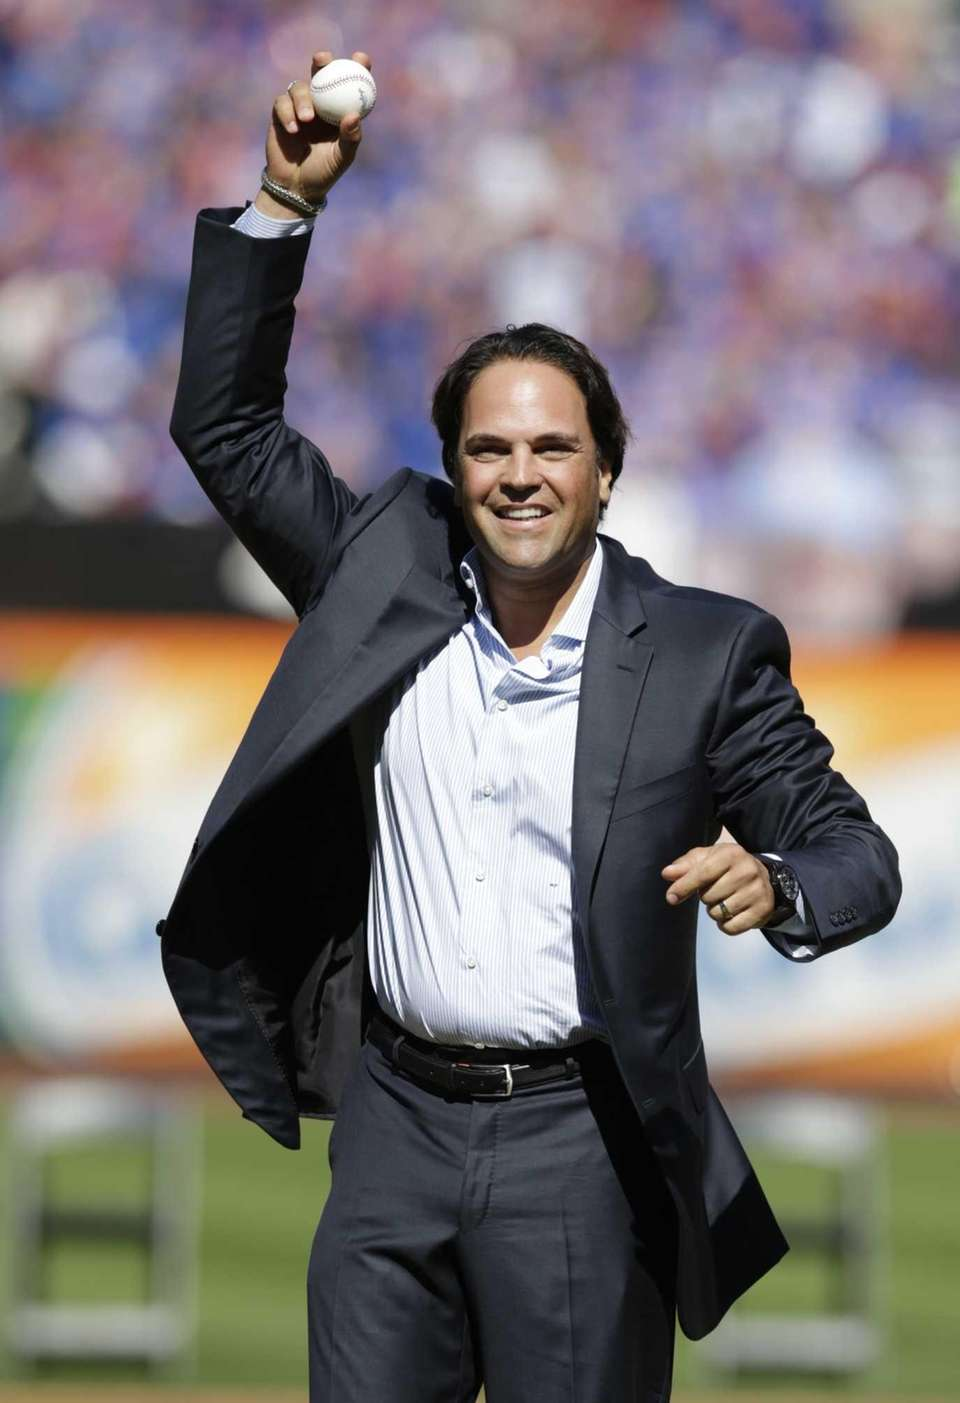 Former Mets catcher Mike Piazza stretches his arm